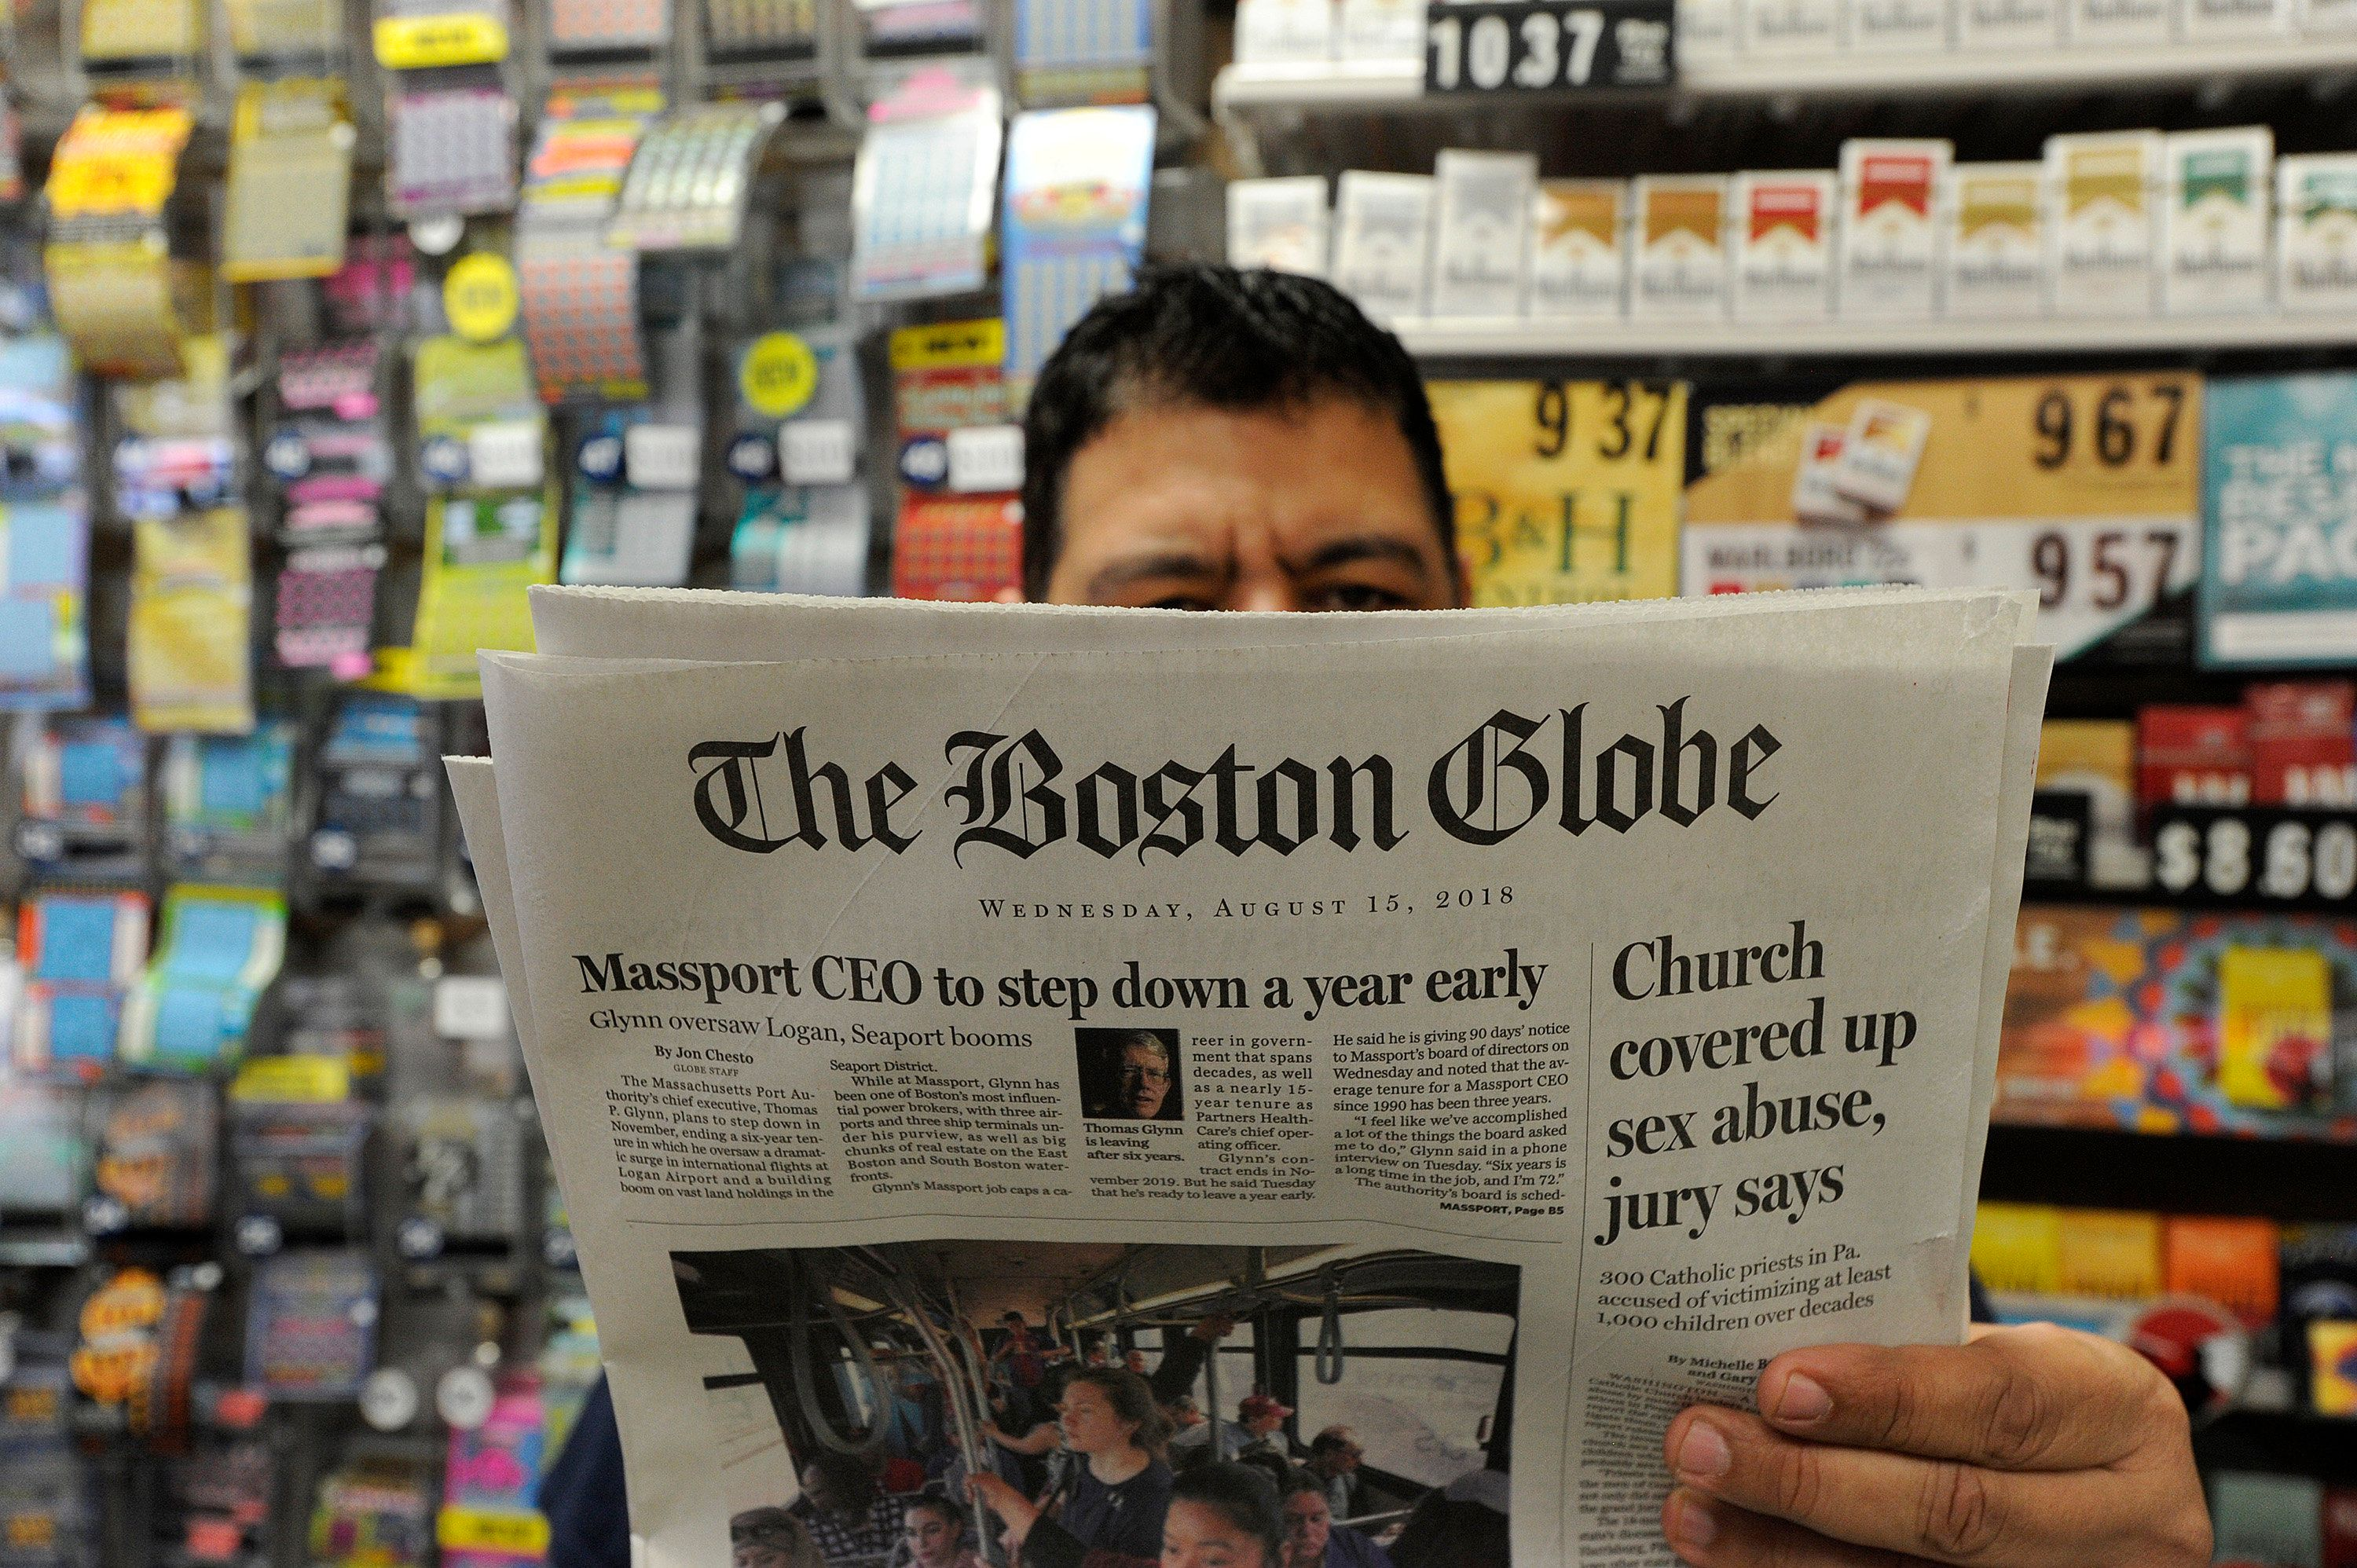 Phillip Minias, 46, owner of Snax Express, reads the Boston Globe, August 15, 2018 in Boston, Massachusetts. - Branded 'enemy of the people' by us President Donald Trump, the US news media is responding with a campaign aimed at countering the president's narrative and highlighting the importance of a free press. More than 200 news organizations are to participate in a coordinated campaign on August 16, 2018, with editorials about the importance of an independent media and a social media hashtag #EnemyOfNone. The move comes in response to a call by the Boston Globe amid a growing sense of unease that Trump's rhetoric is harmful to a free press and may even incite violence against journalists. (Photo by Joseph PREZIOSO / AFP)        (Photo credit should read JOSEPH PREZIOSO/AFP/Getty Images)